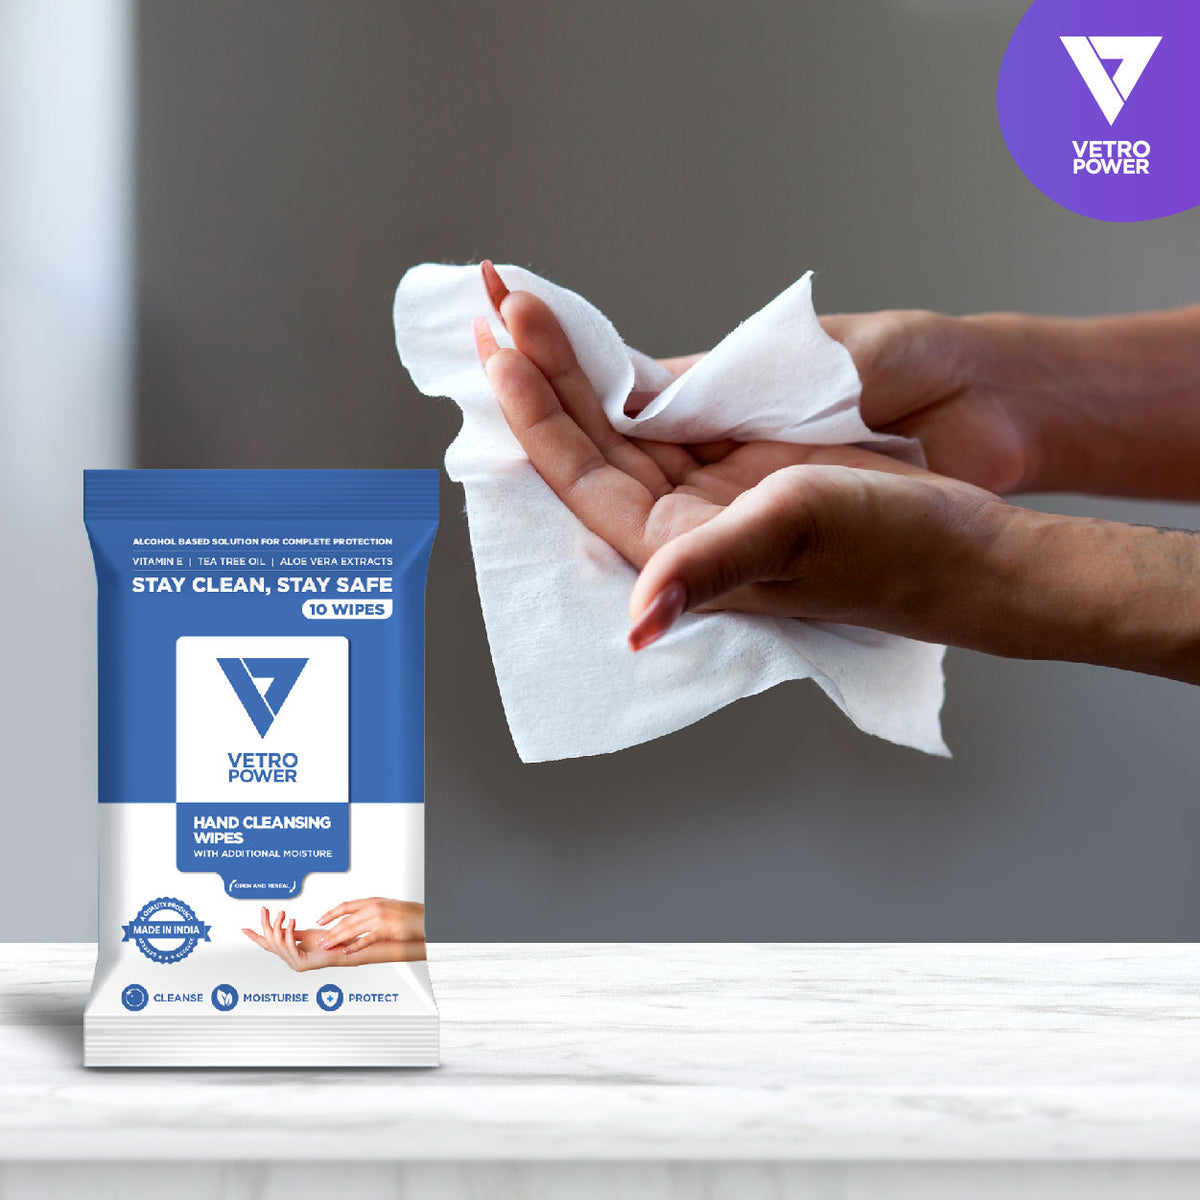 Vetro Power Hand Cleansing Wipes with Aloe Vera, Vitamin E & Tea Tree Oil - 50 Wipes (Pack of 5, 10 each)